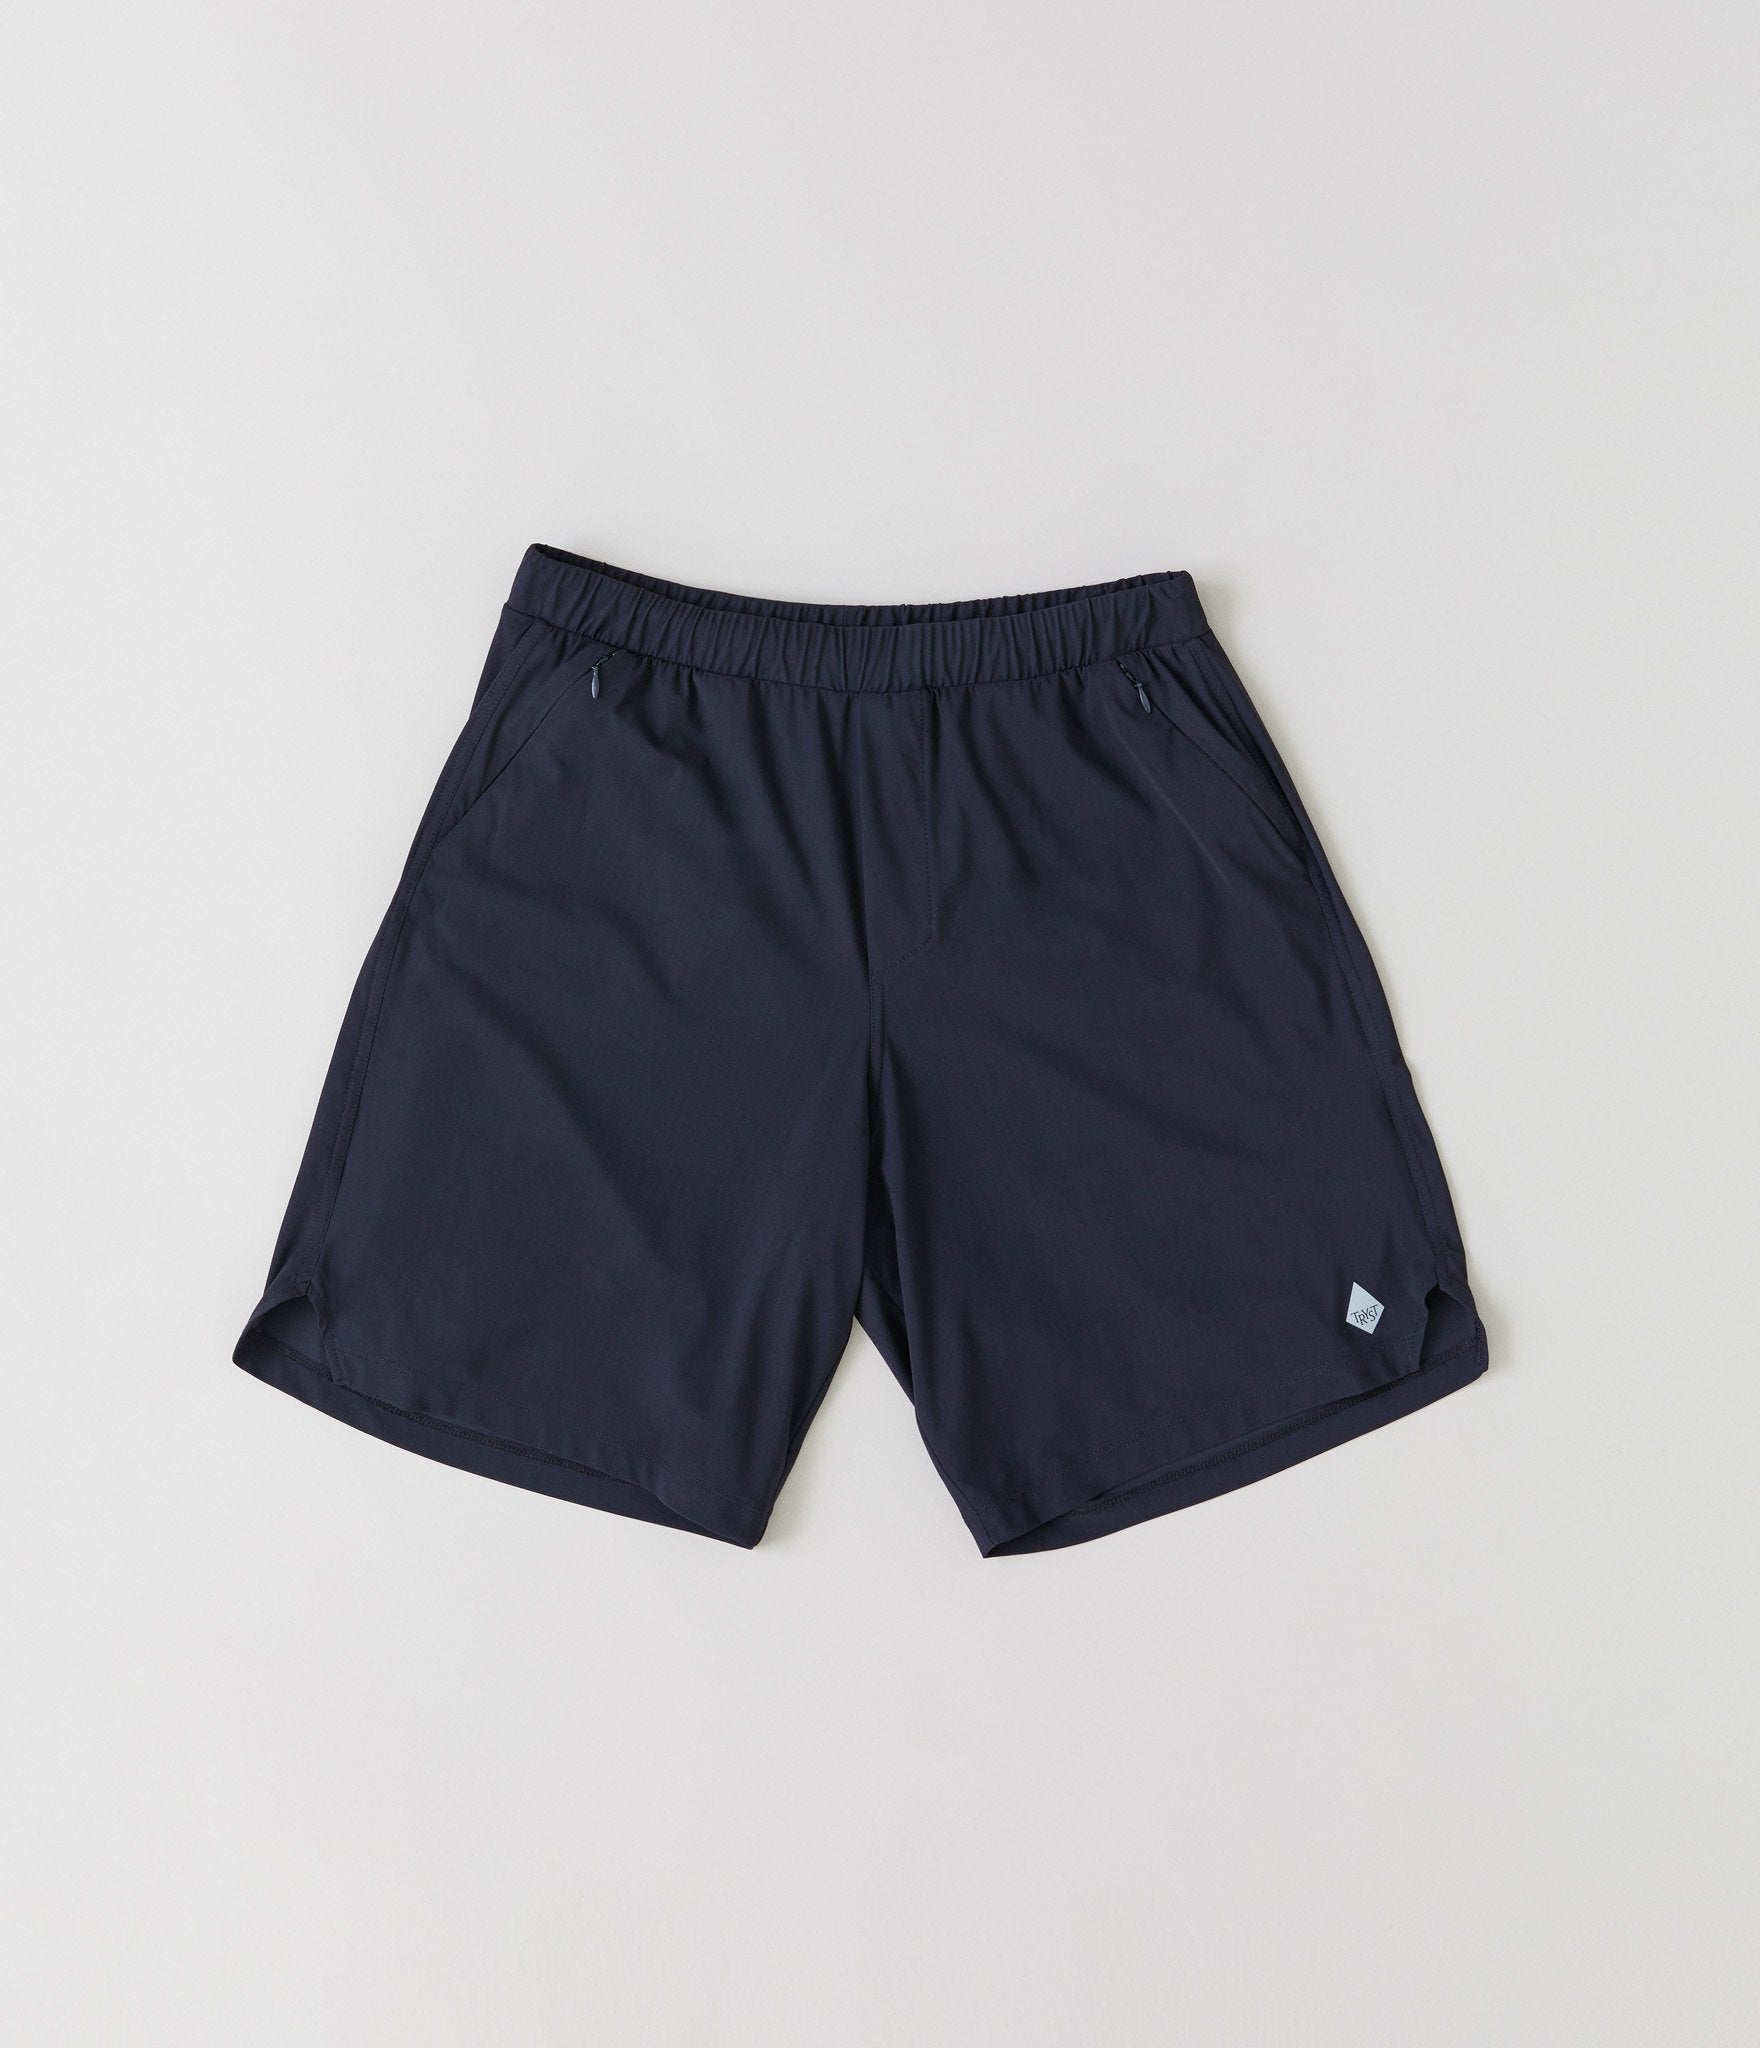 Cape Town shorts </br>Black